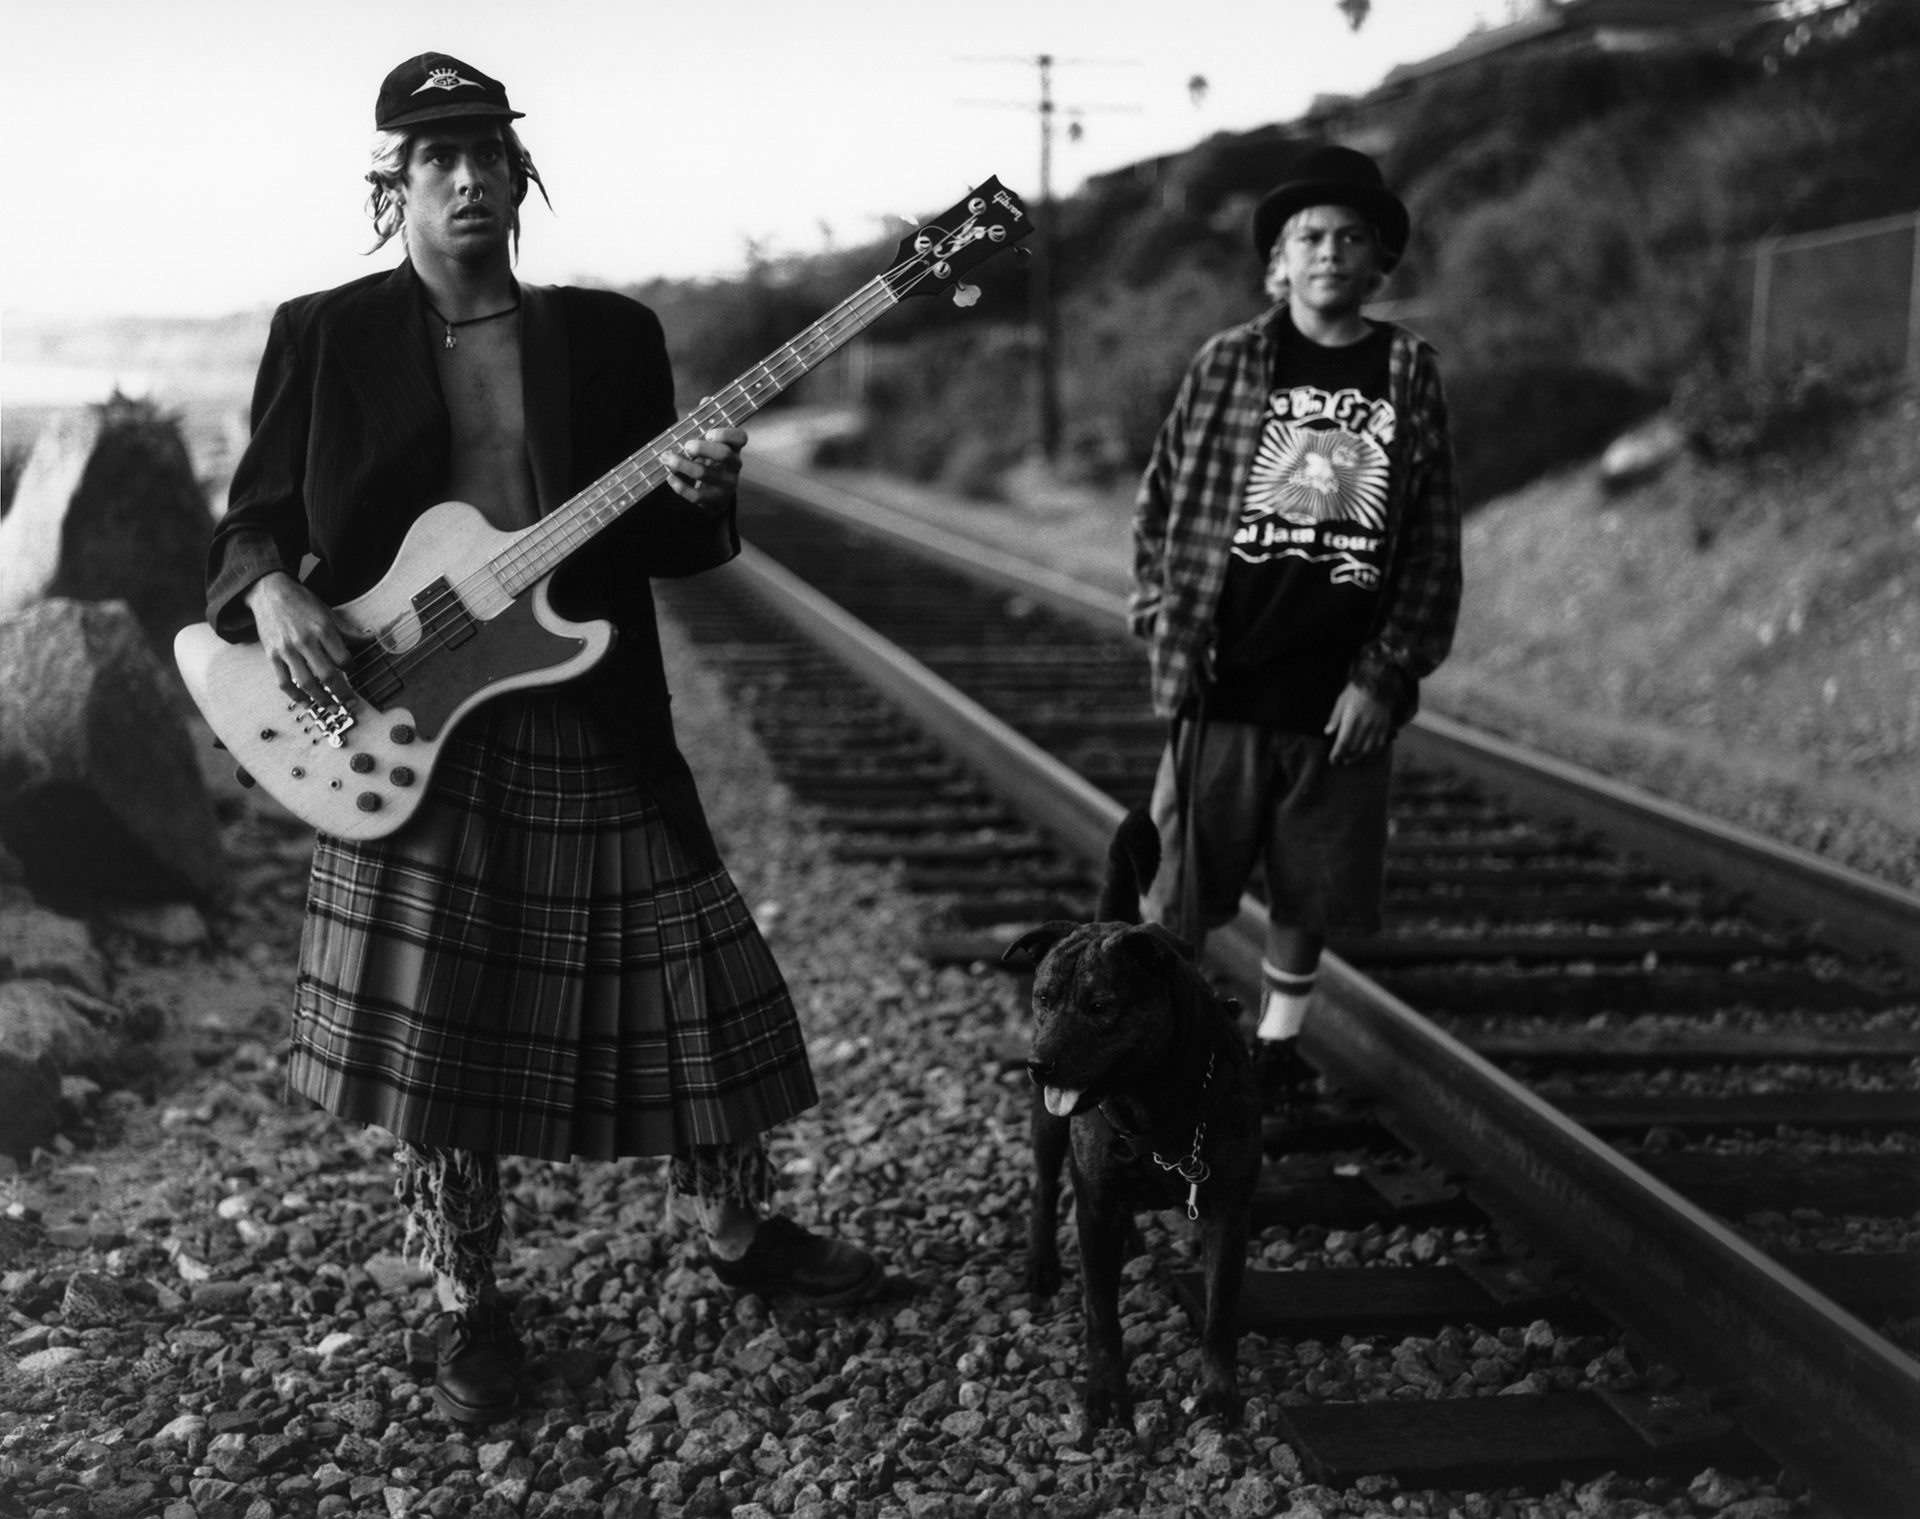 Christian and Nathan with their dog down on the tracks below the Fletcher compound. San Clemente, California. 1992.